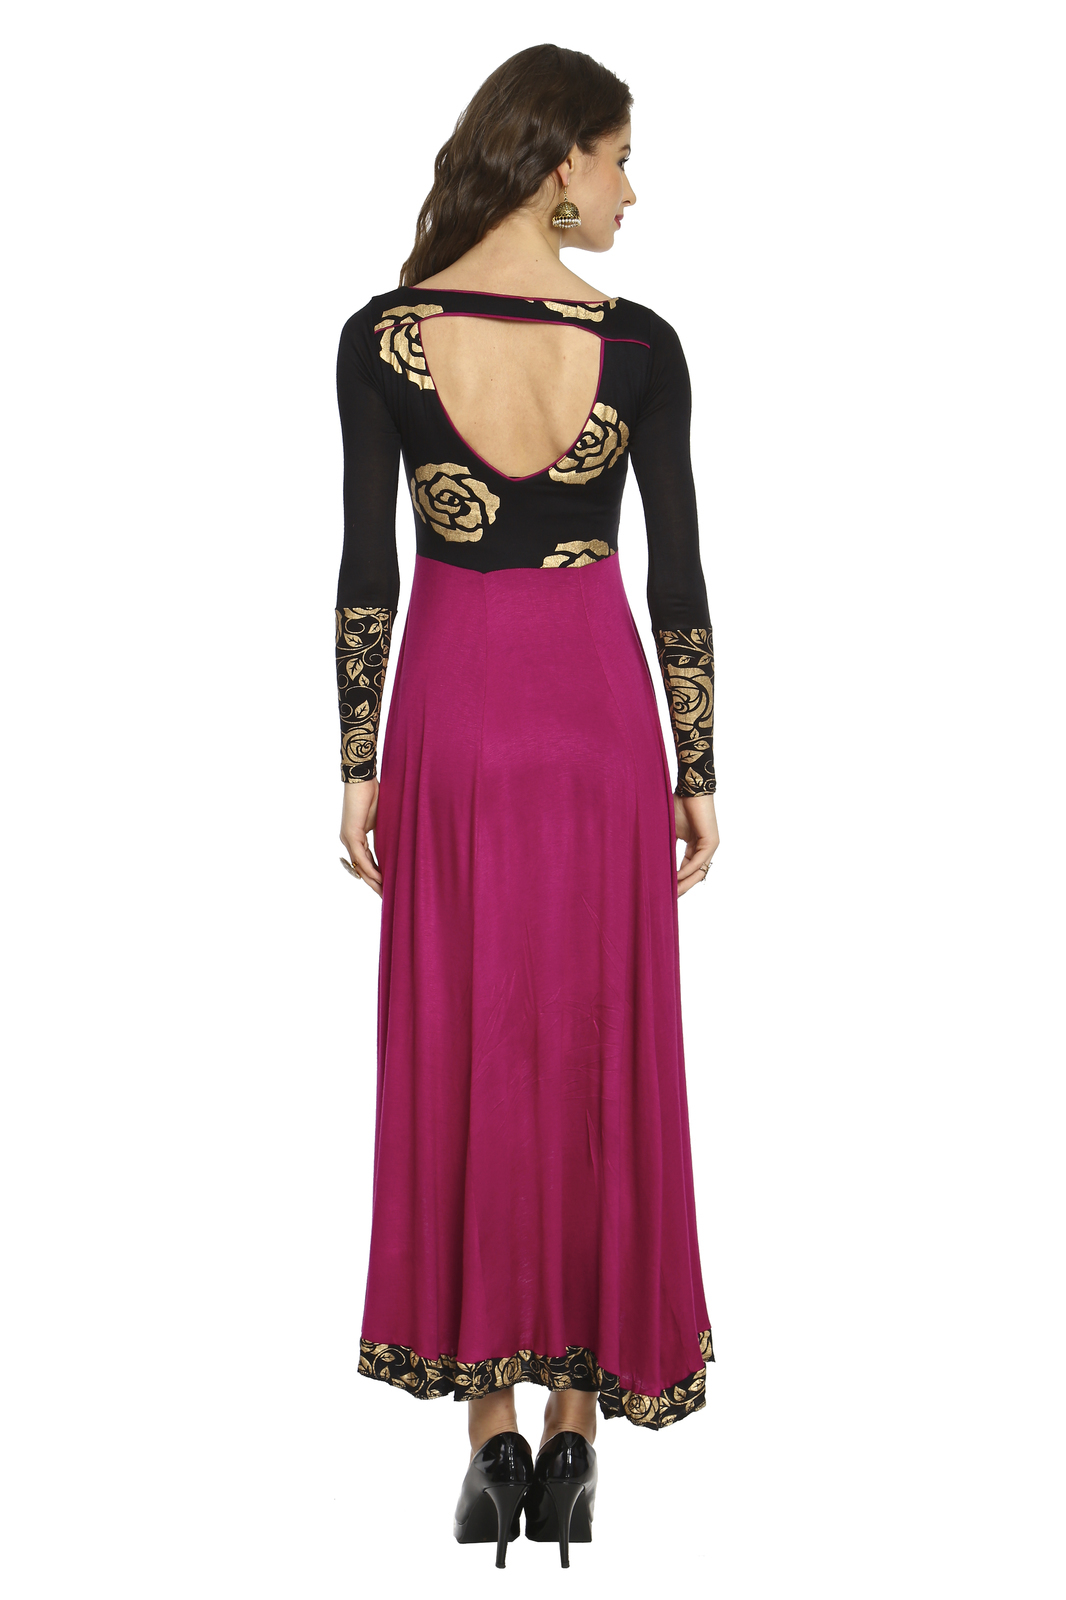 Ira Soleil knitted viscose black purple high low kurti with floral print